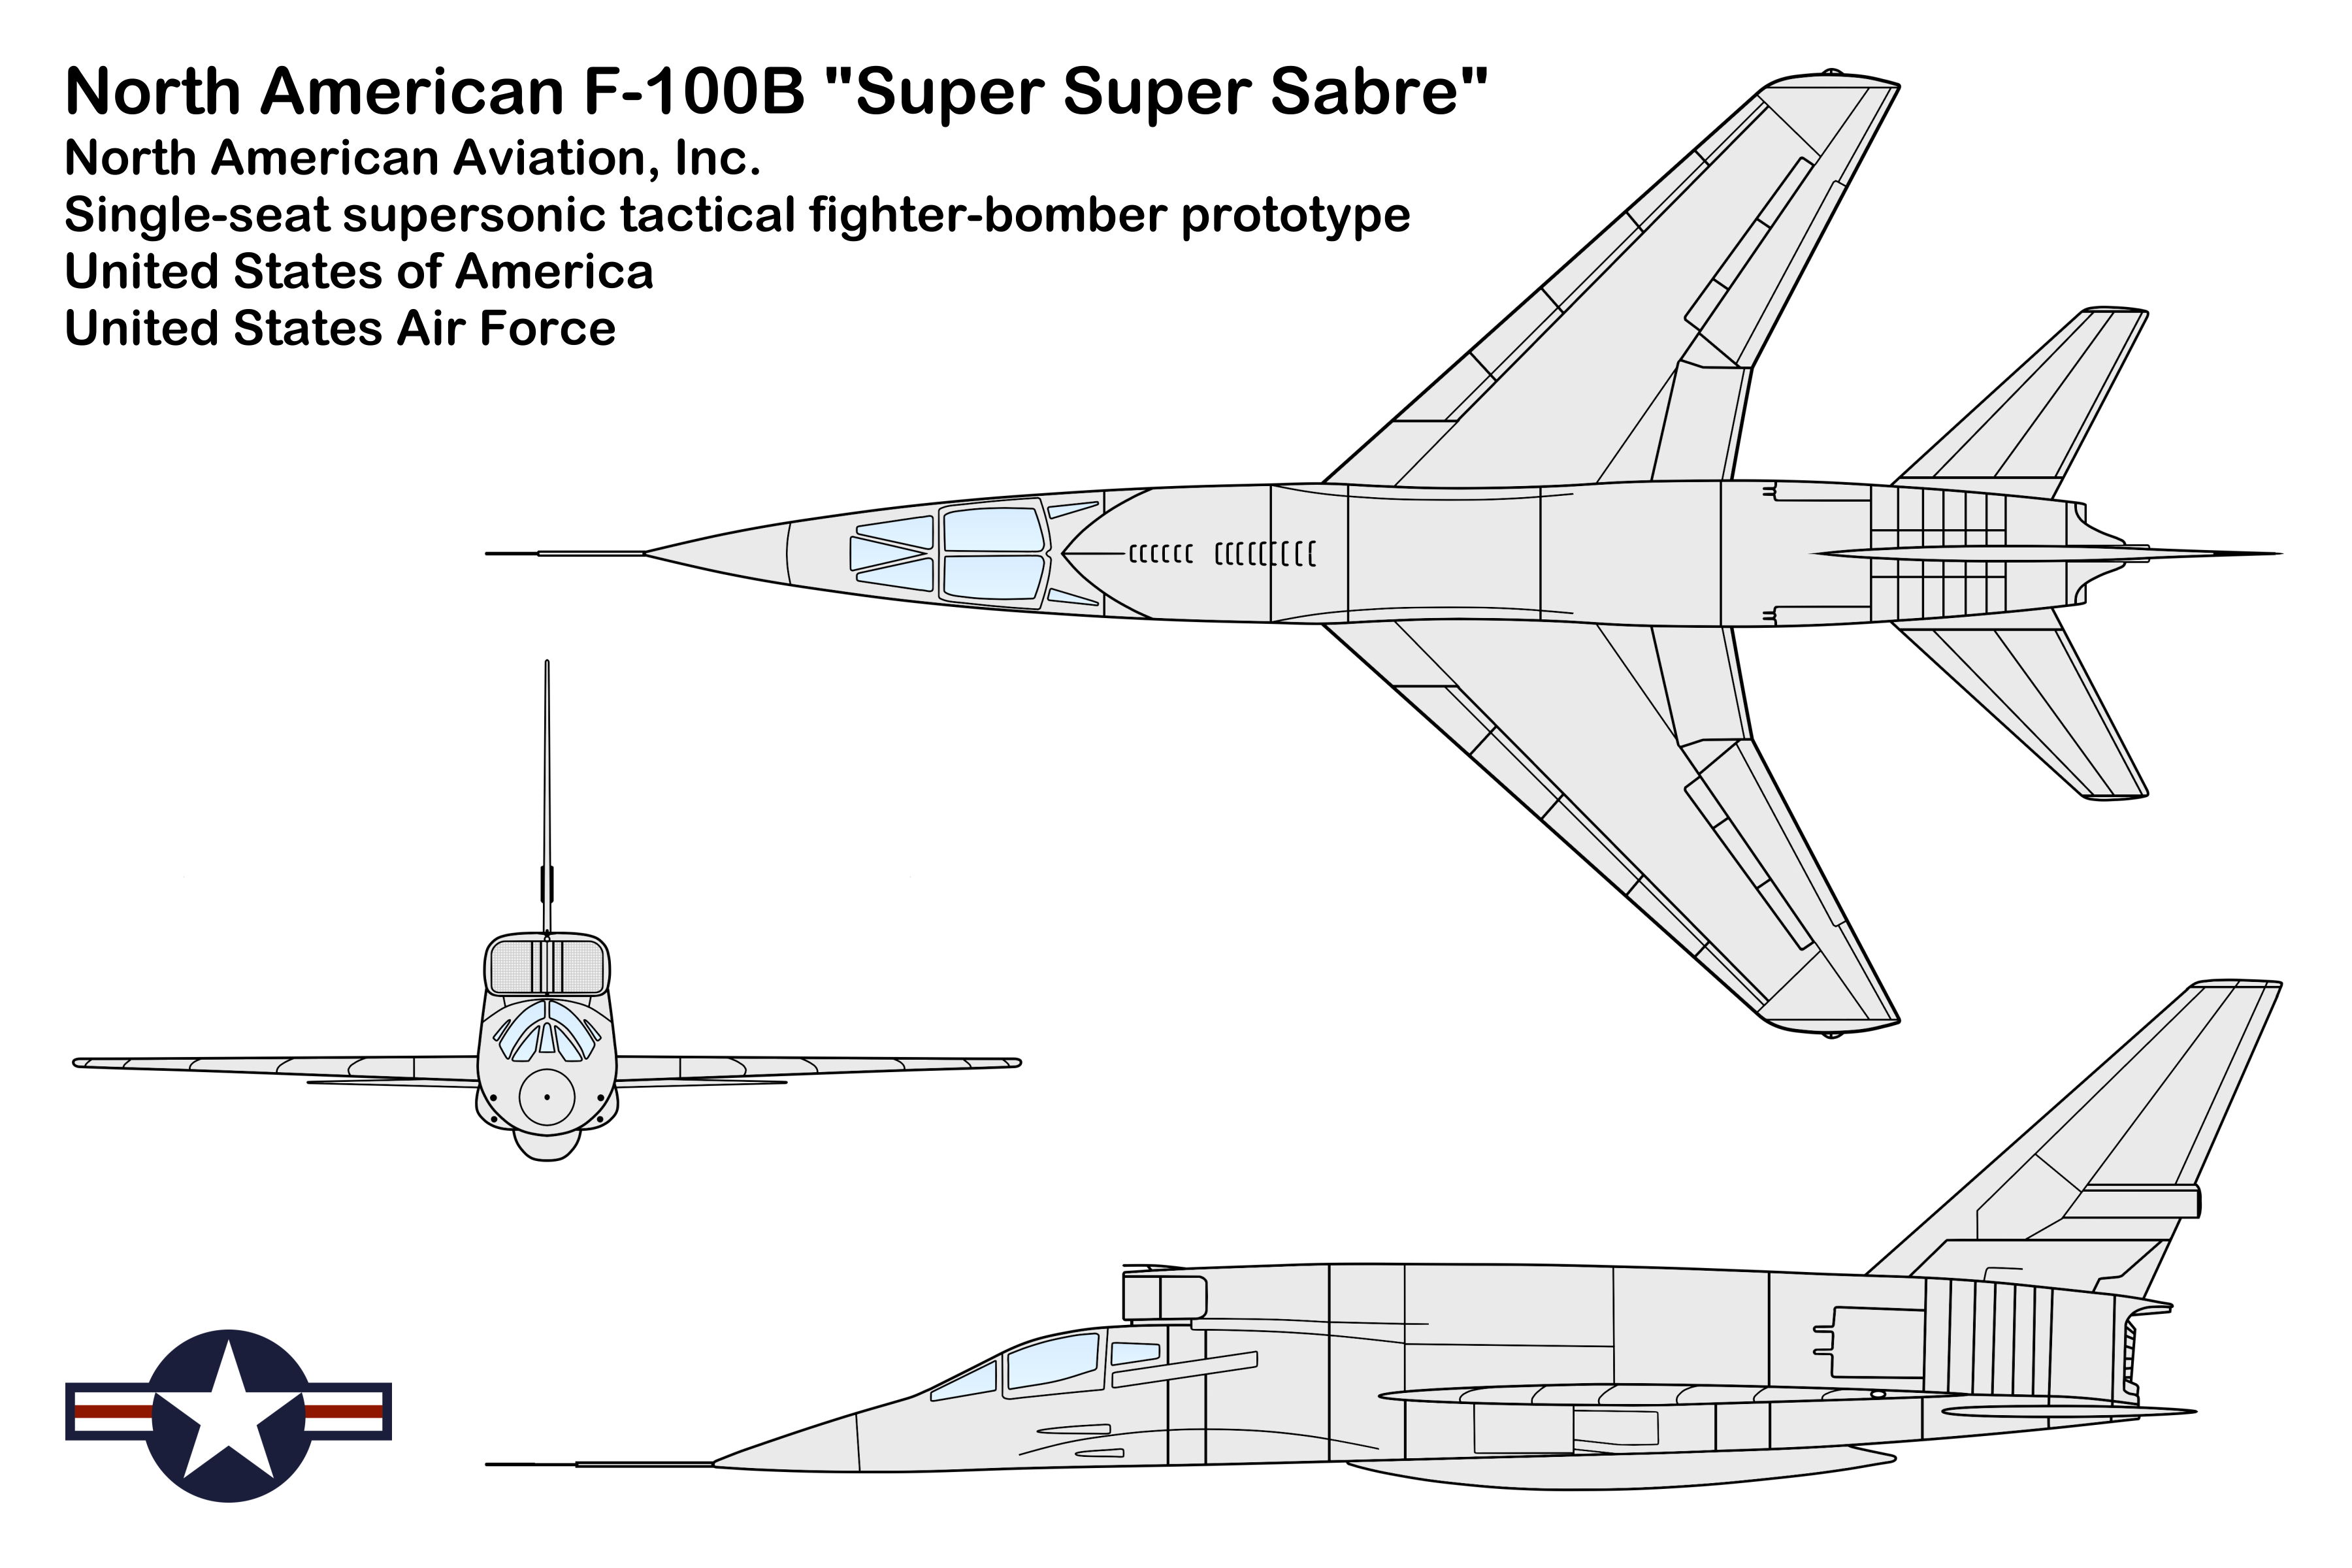 N-Listings of Aircraft, 3-View and Silhouette Drawings